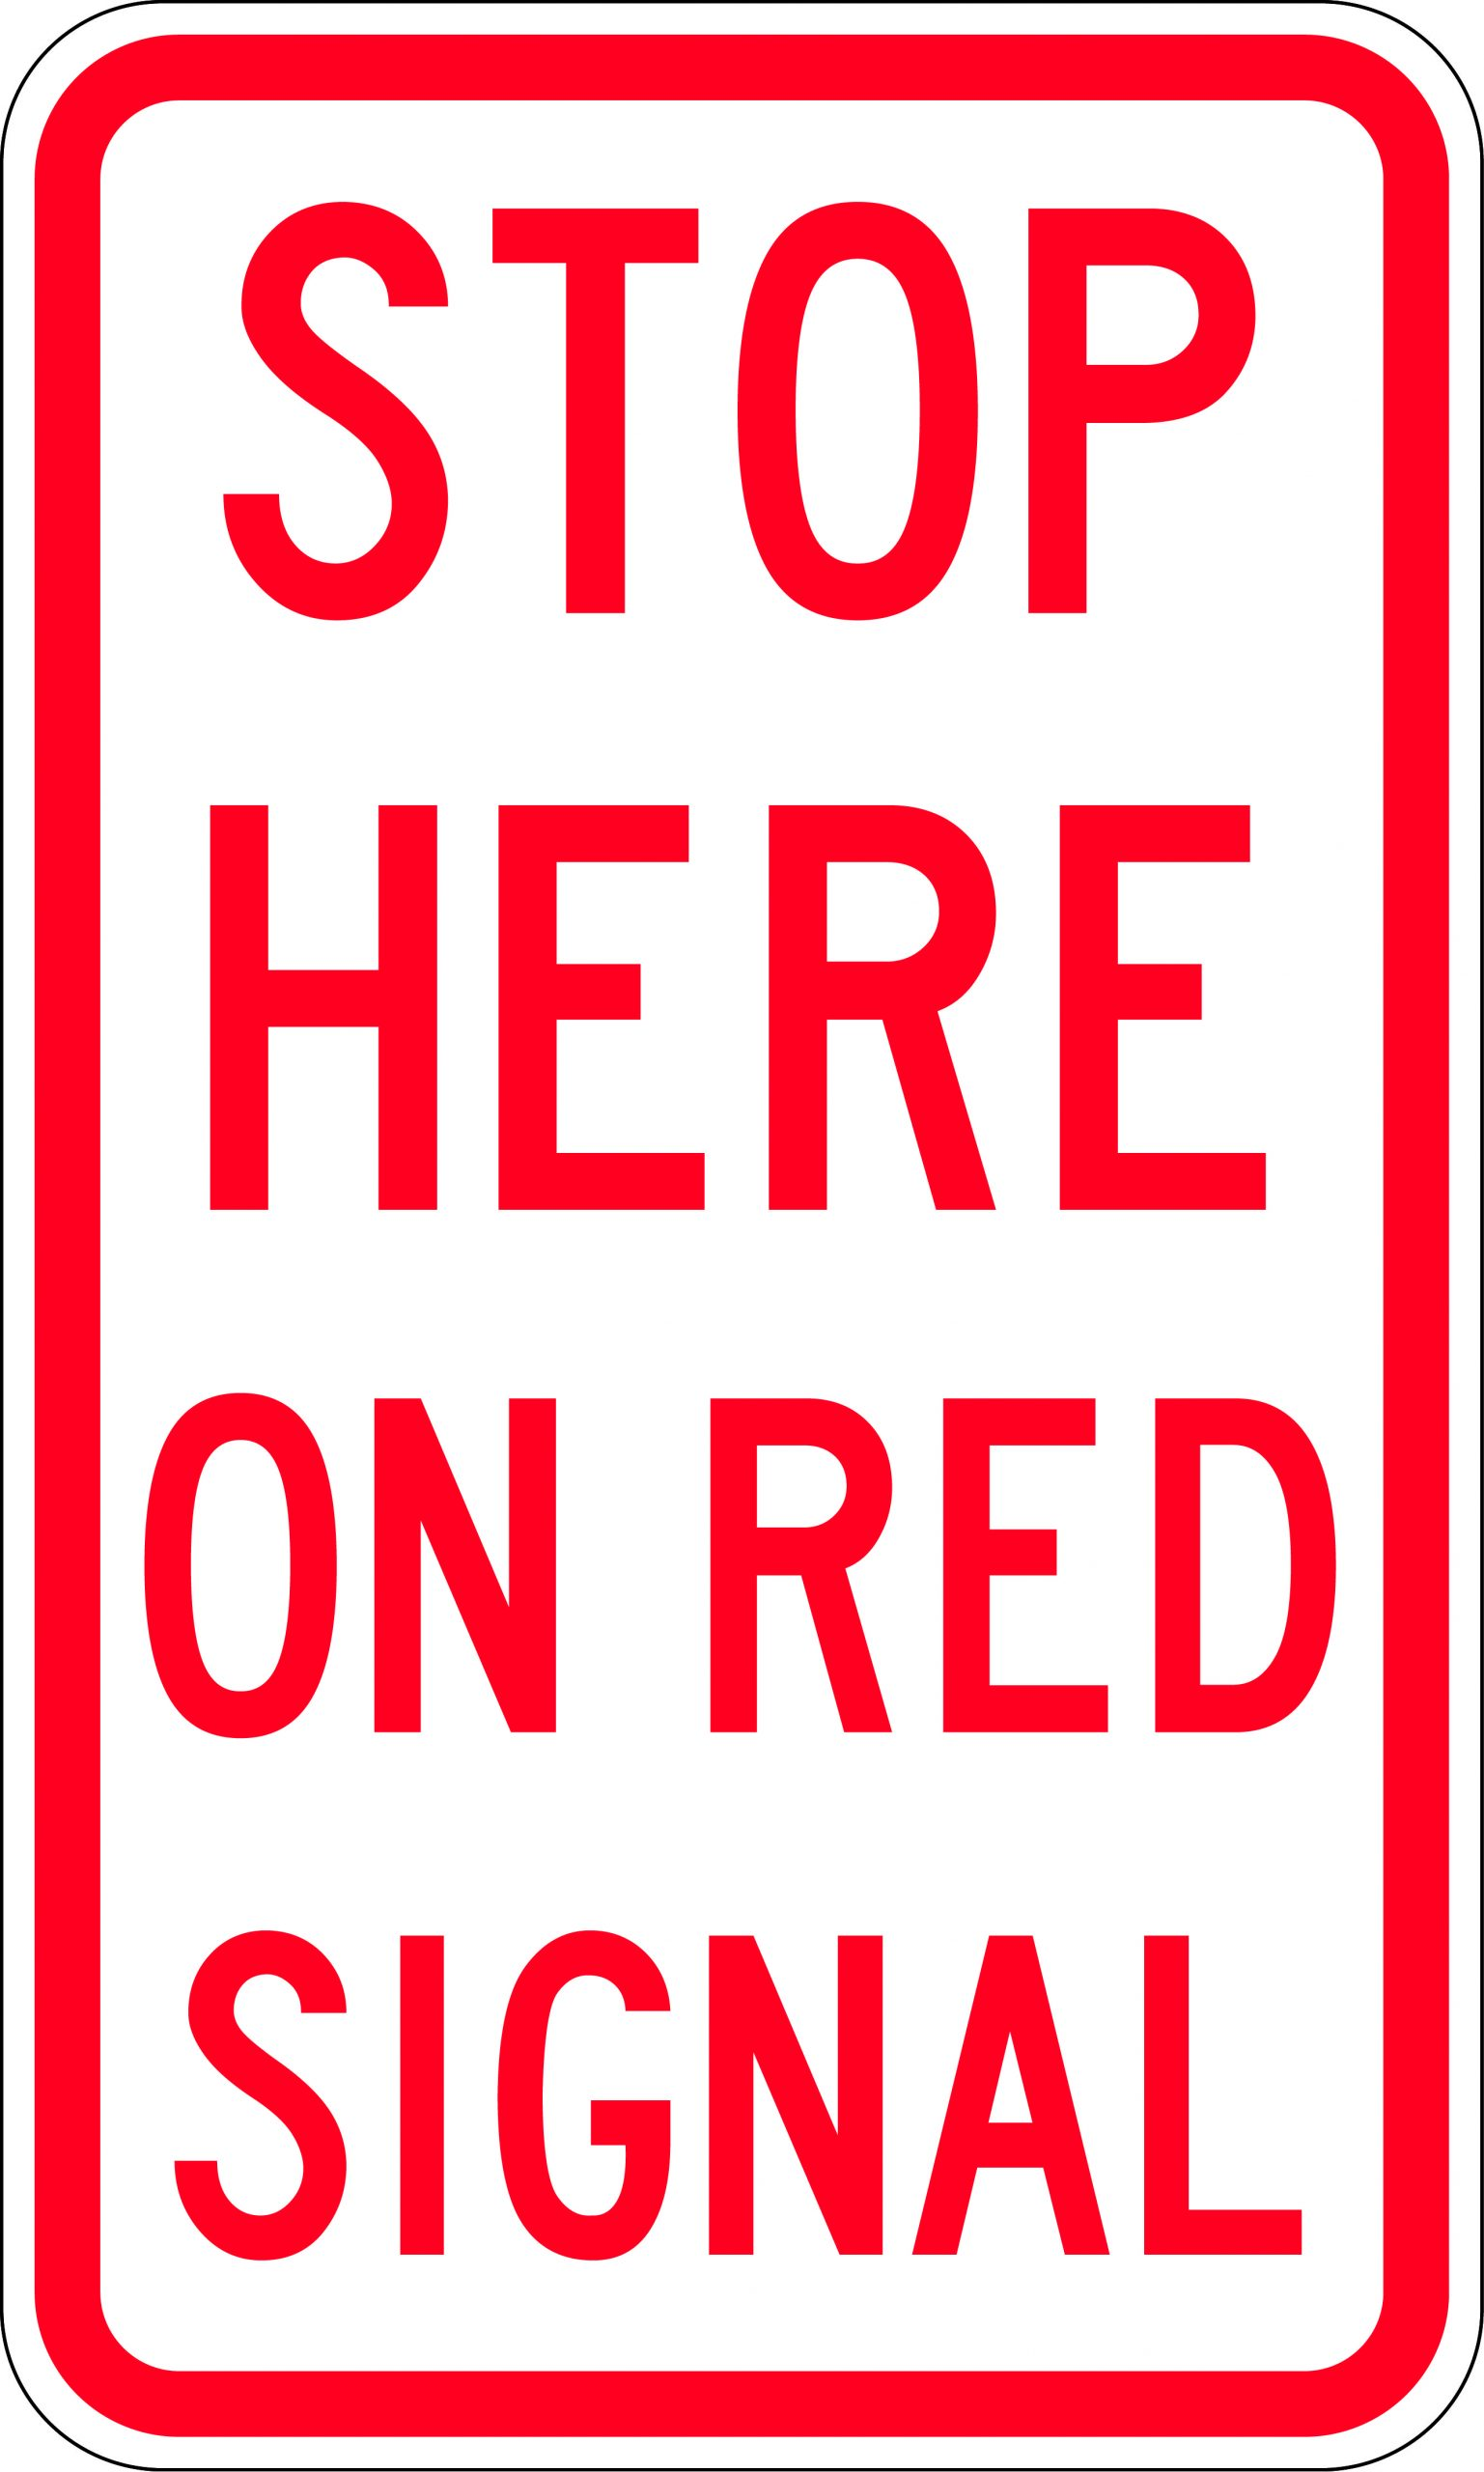 Stop Here On Red Signal Uniform Safety Signs